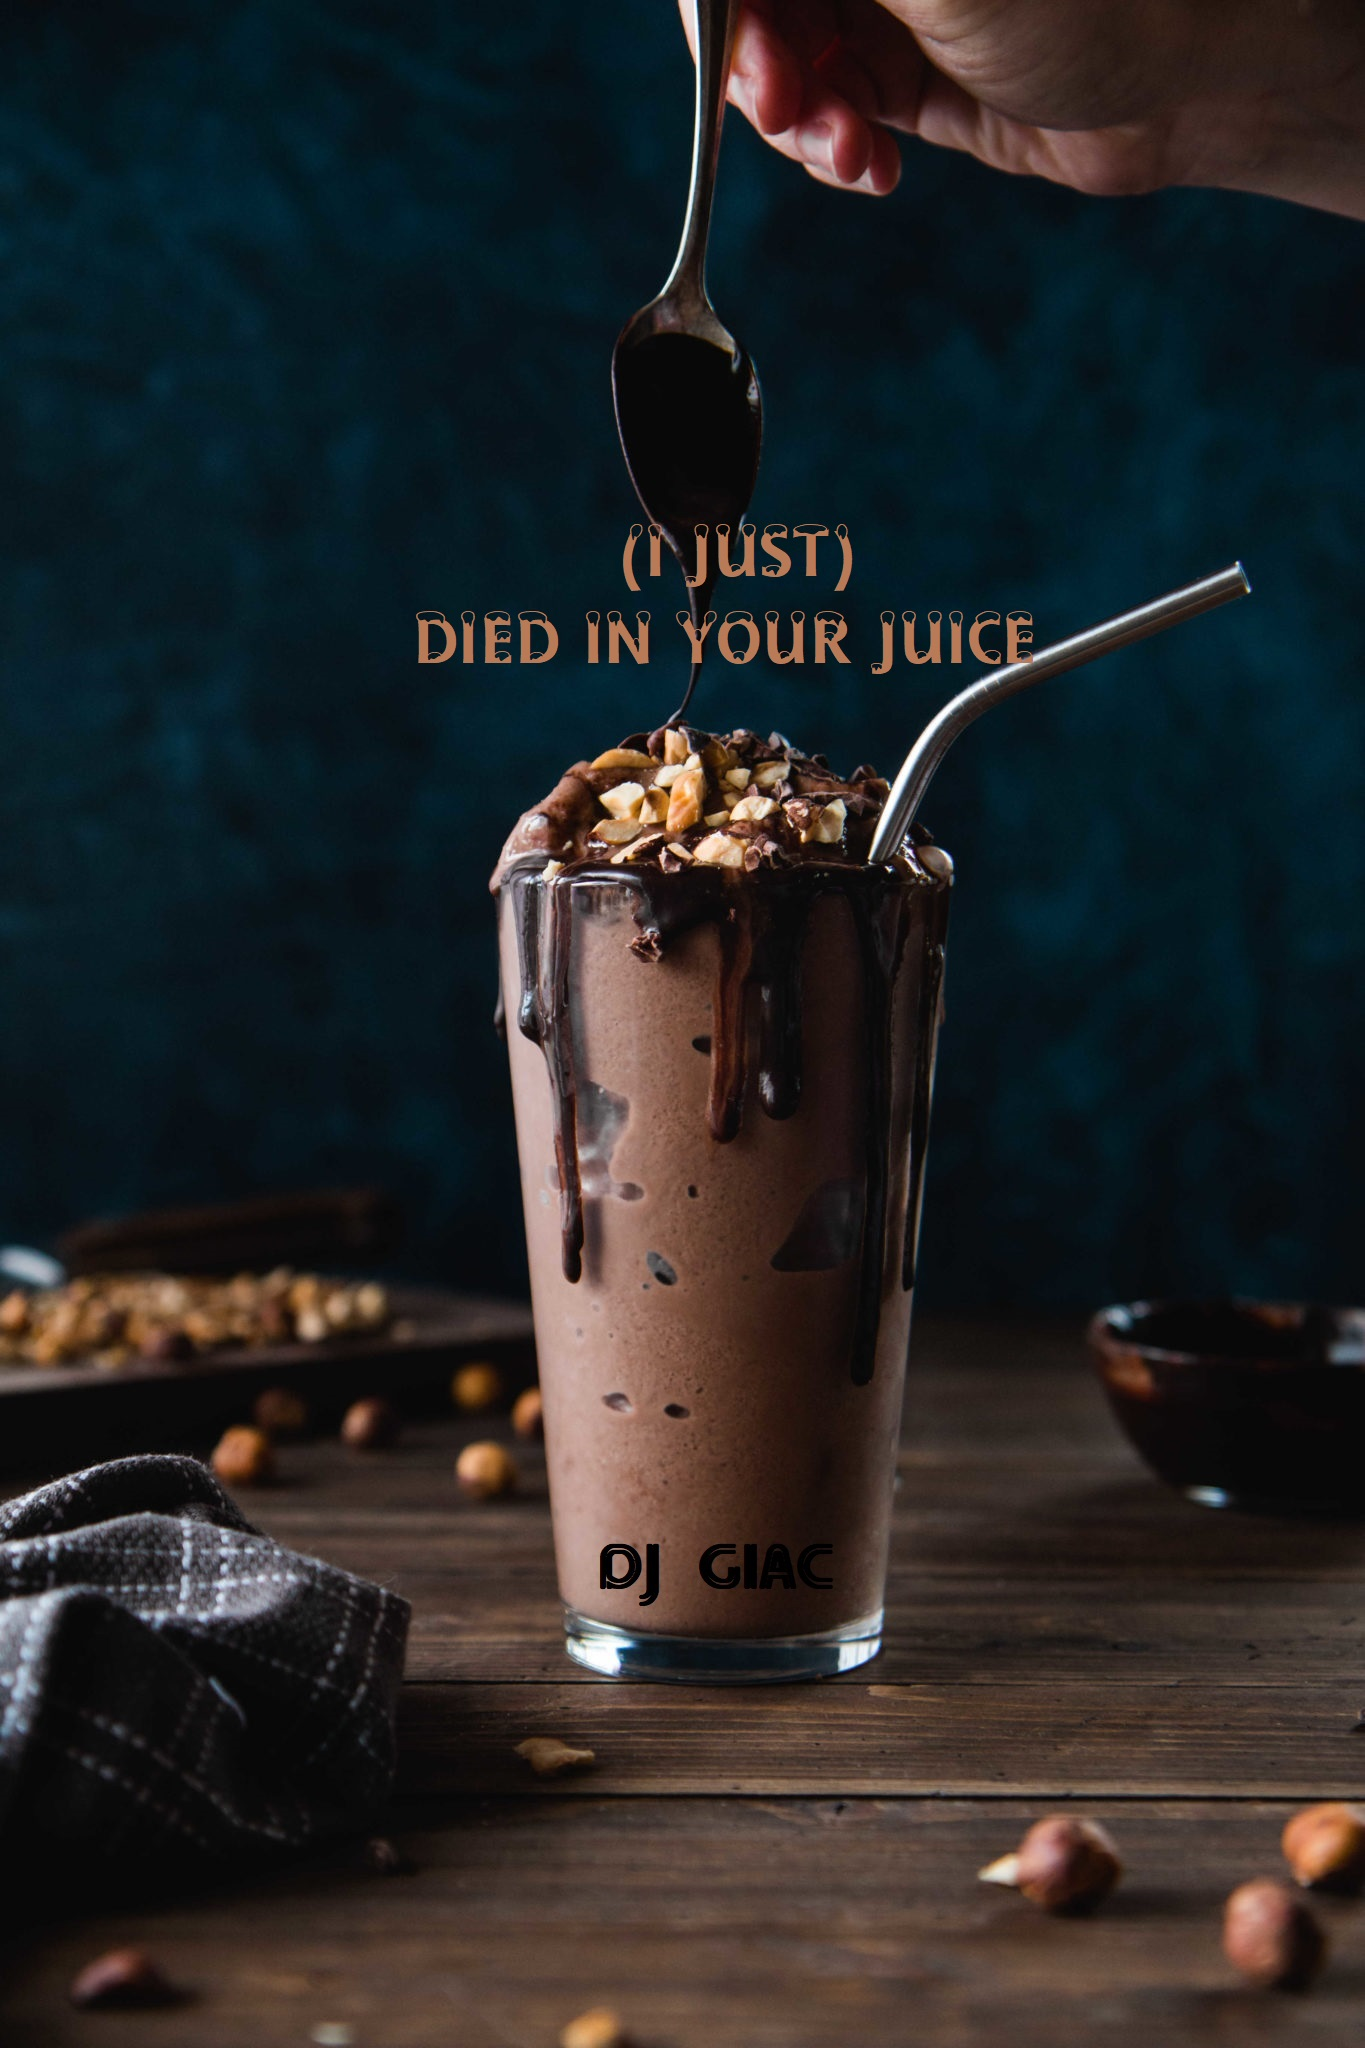 Cutting Crew vs Lizzo - (I Just) Died in Your Juice (2019)